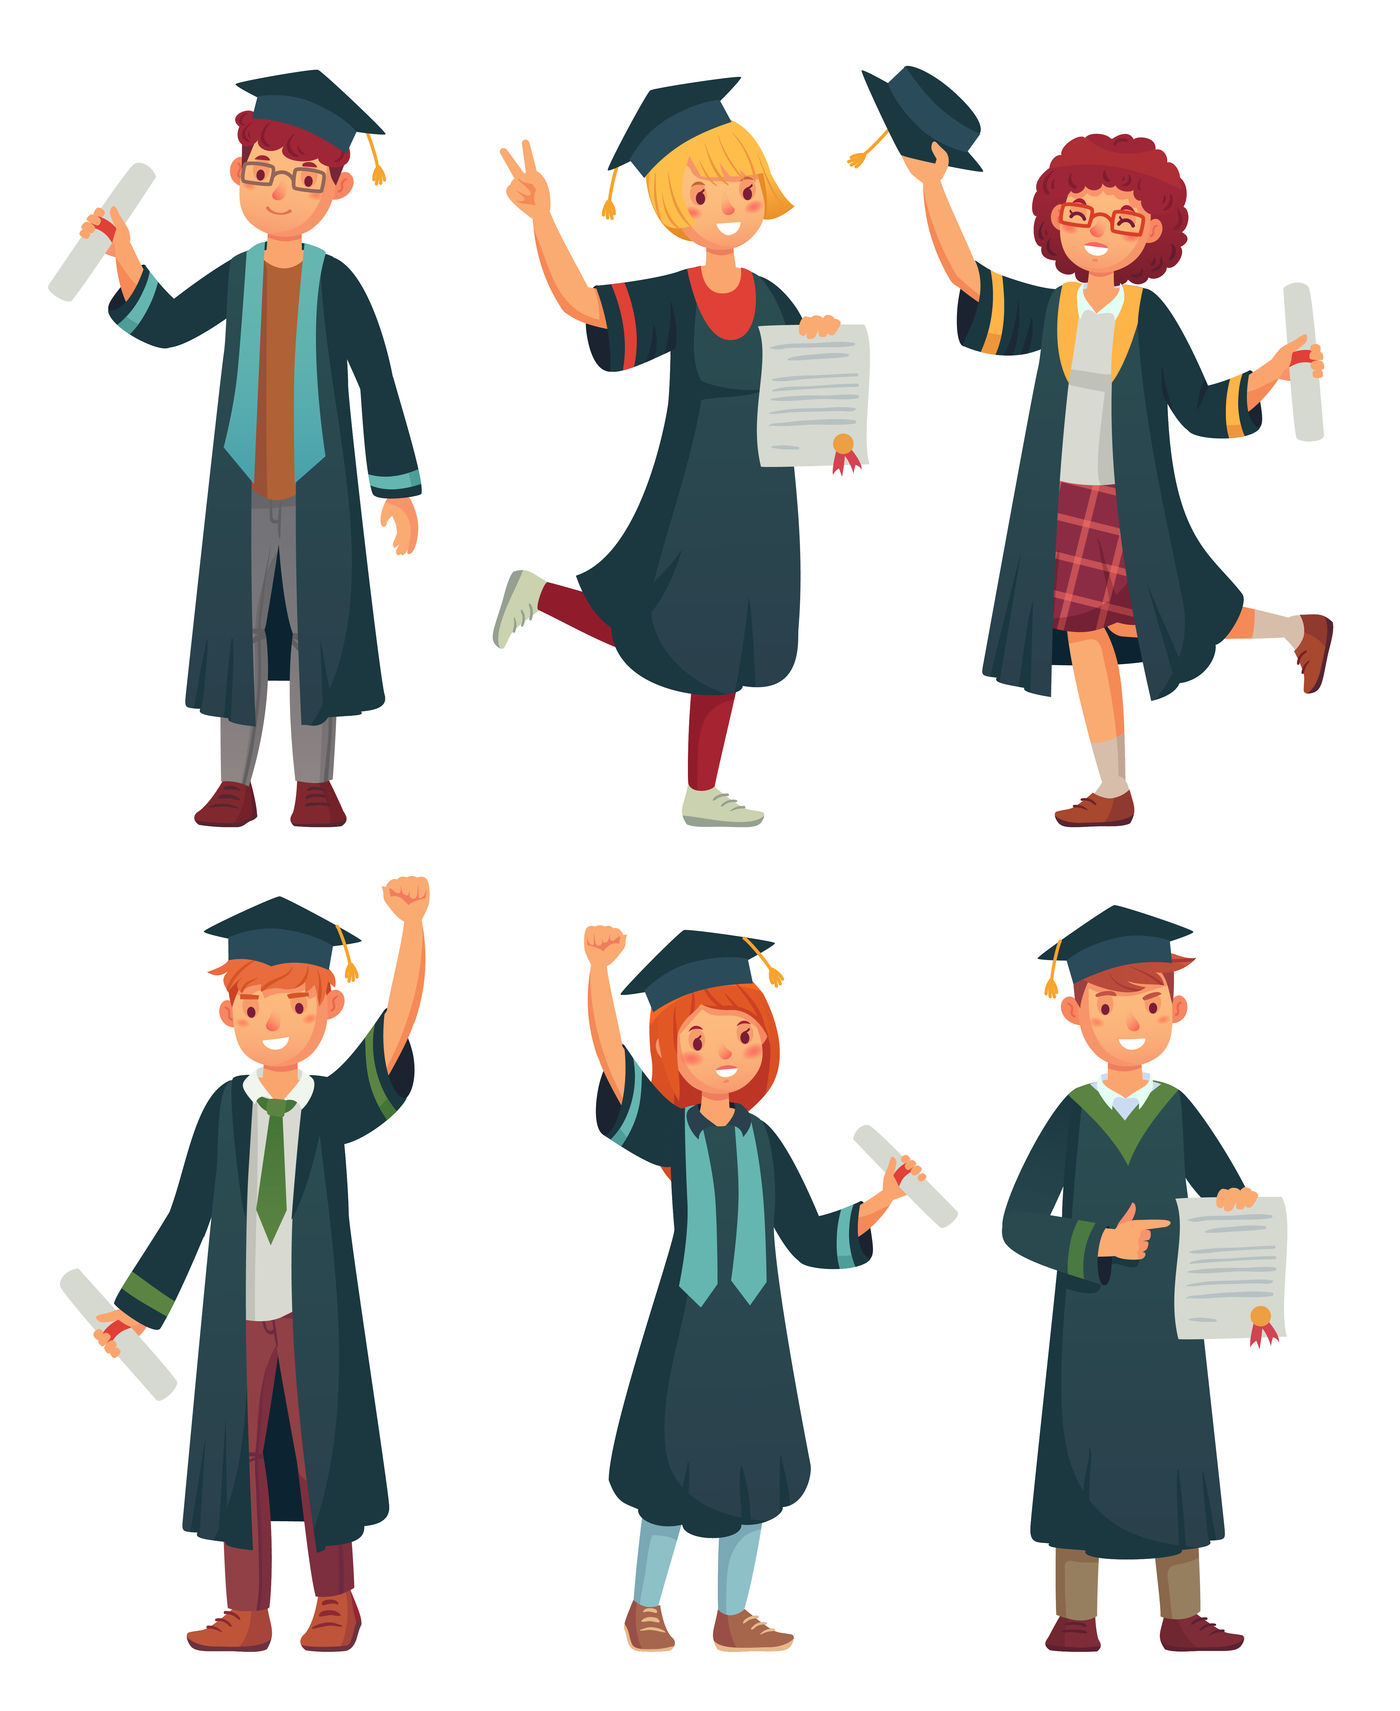 Graduates Students College Student In Graduation Gowns Educated